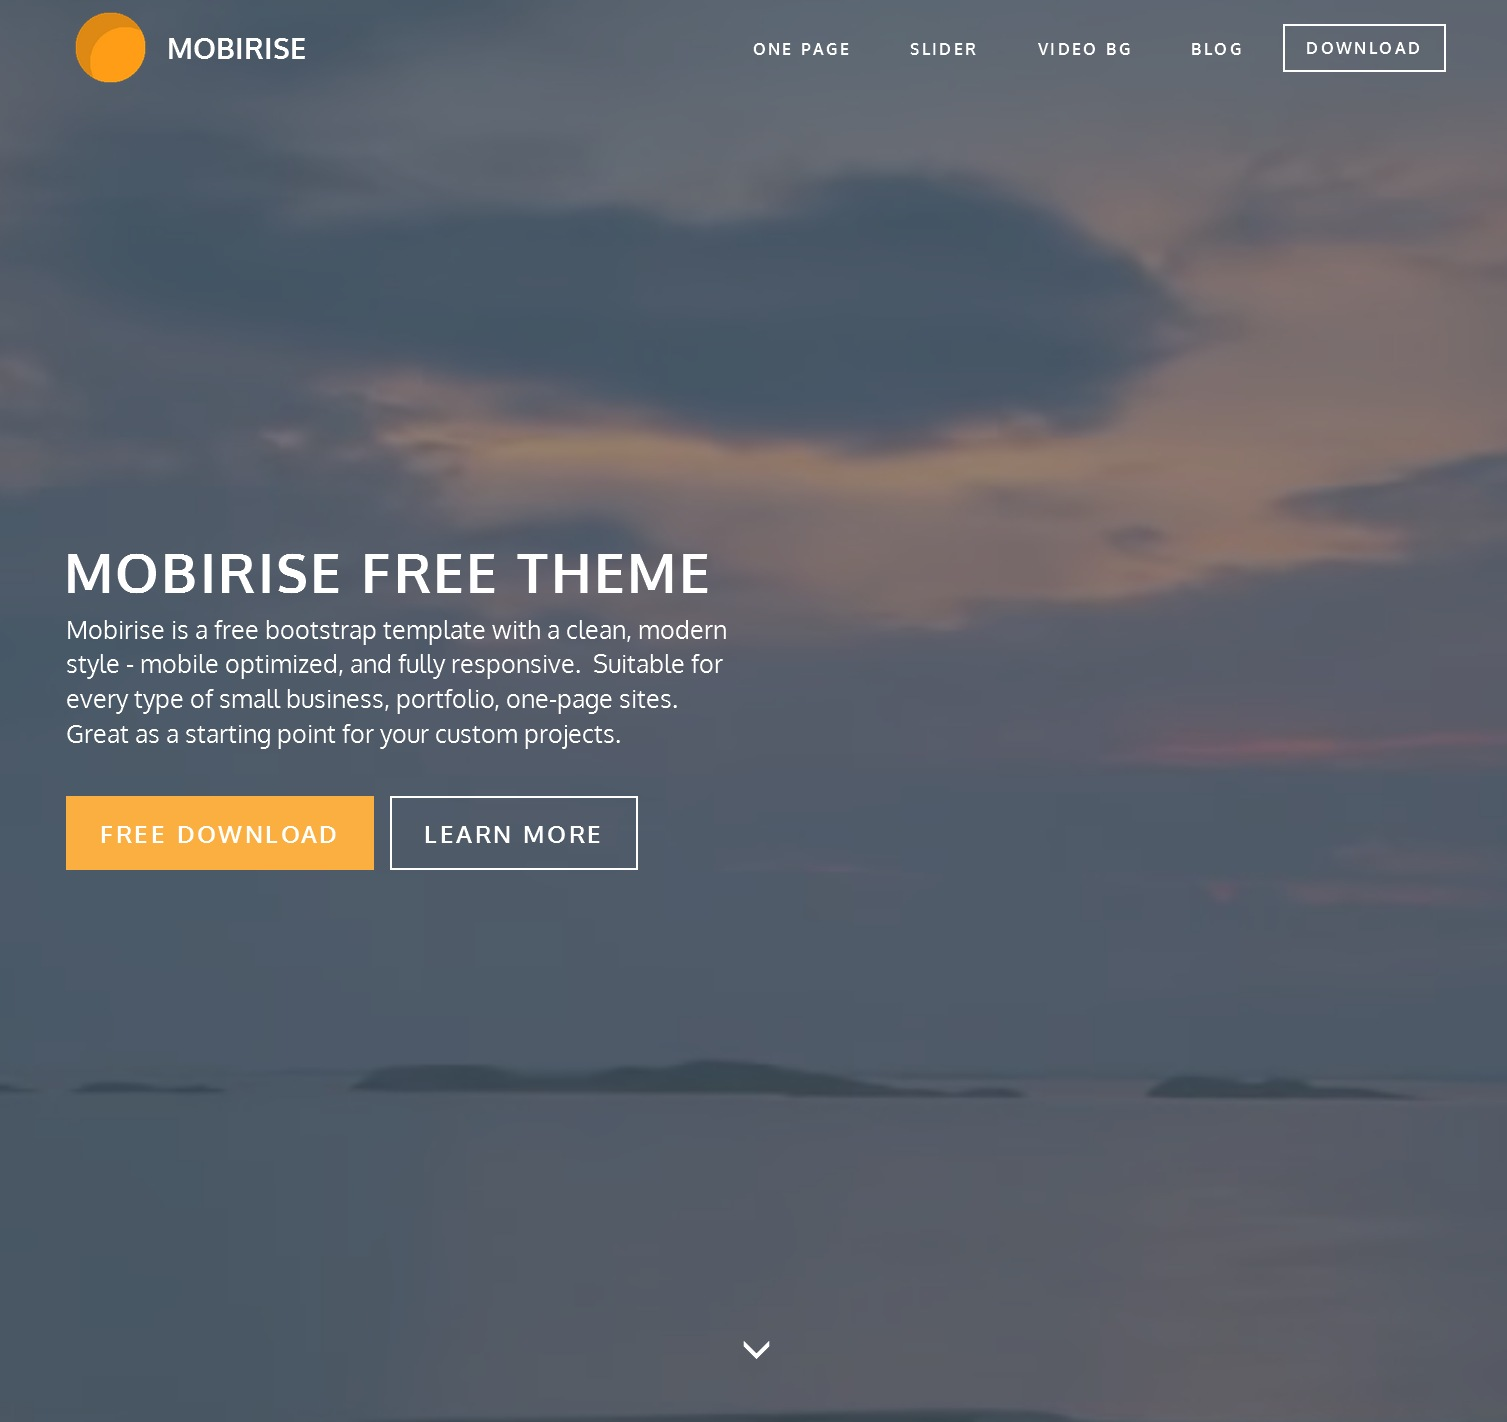 Mobile Bootstrap Design Theme